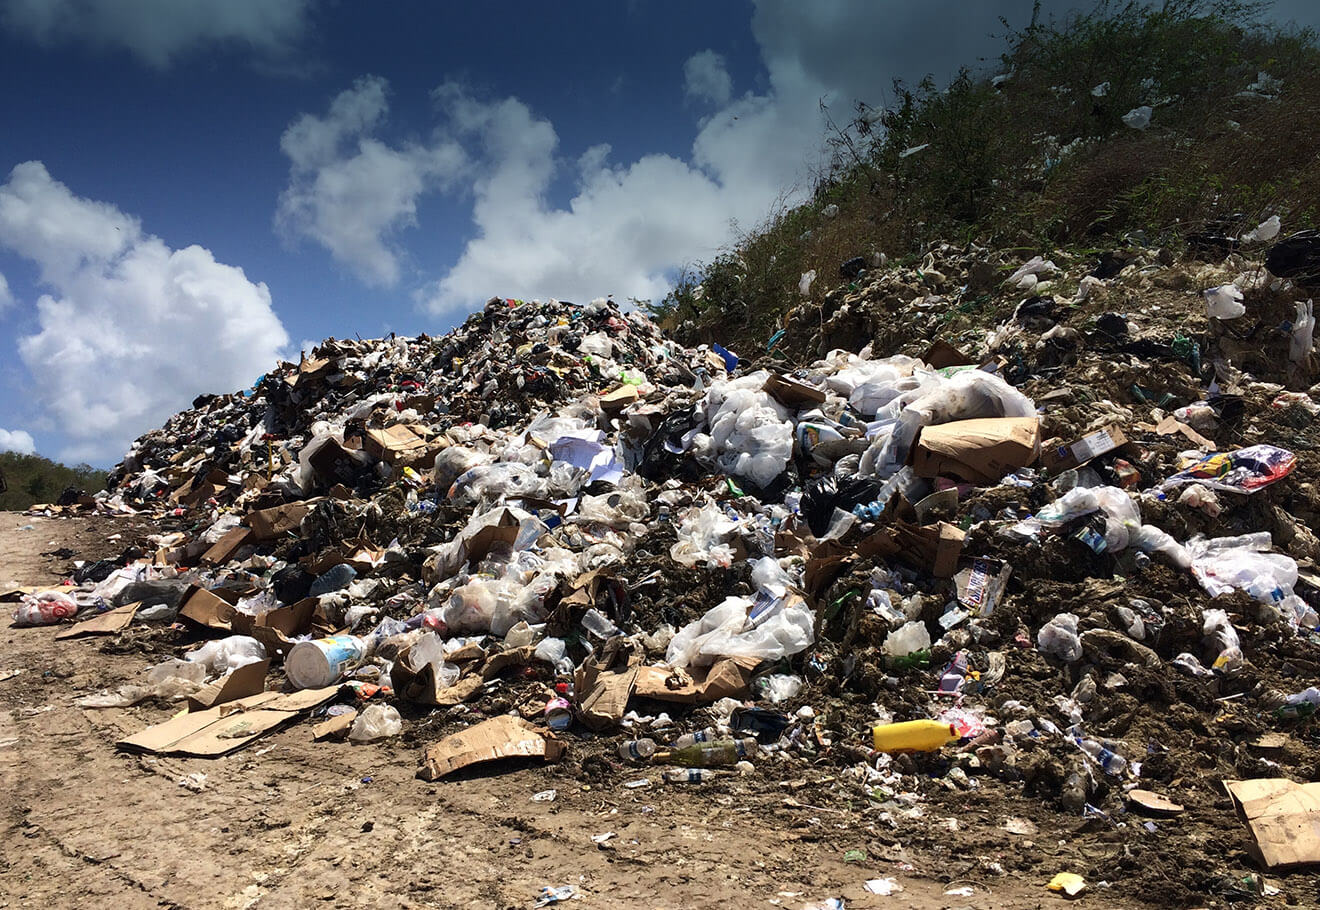 Landfill site in the Caribbean